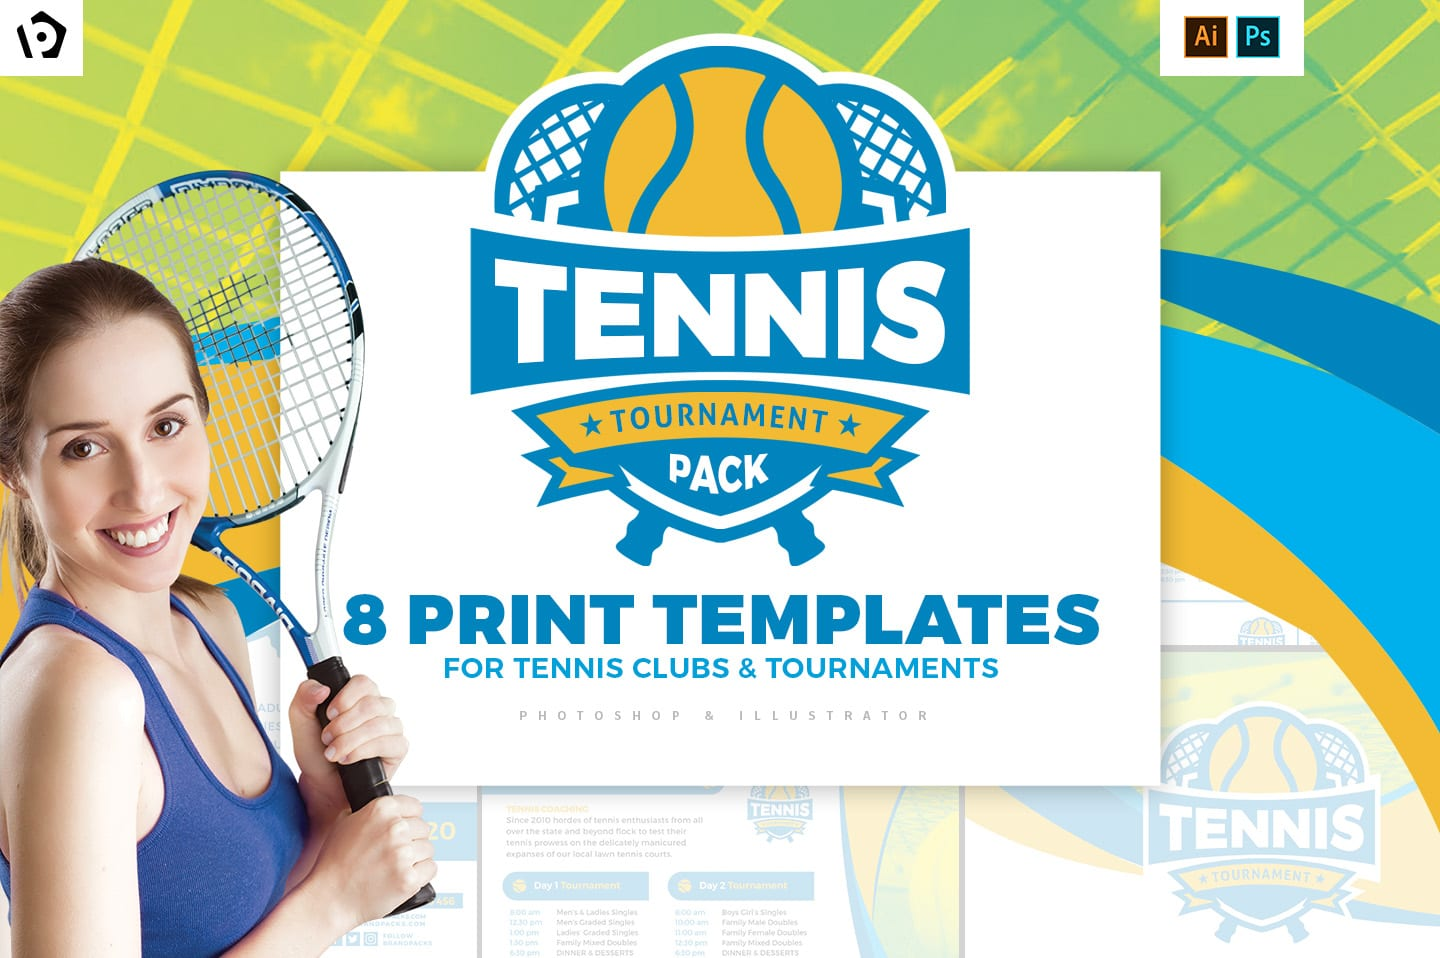 Tennis Lesson Flyer Template from brandpacks.com